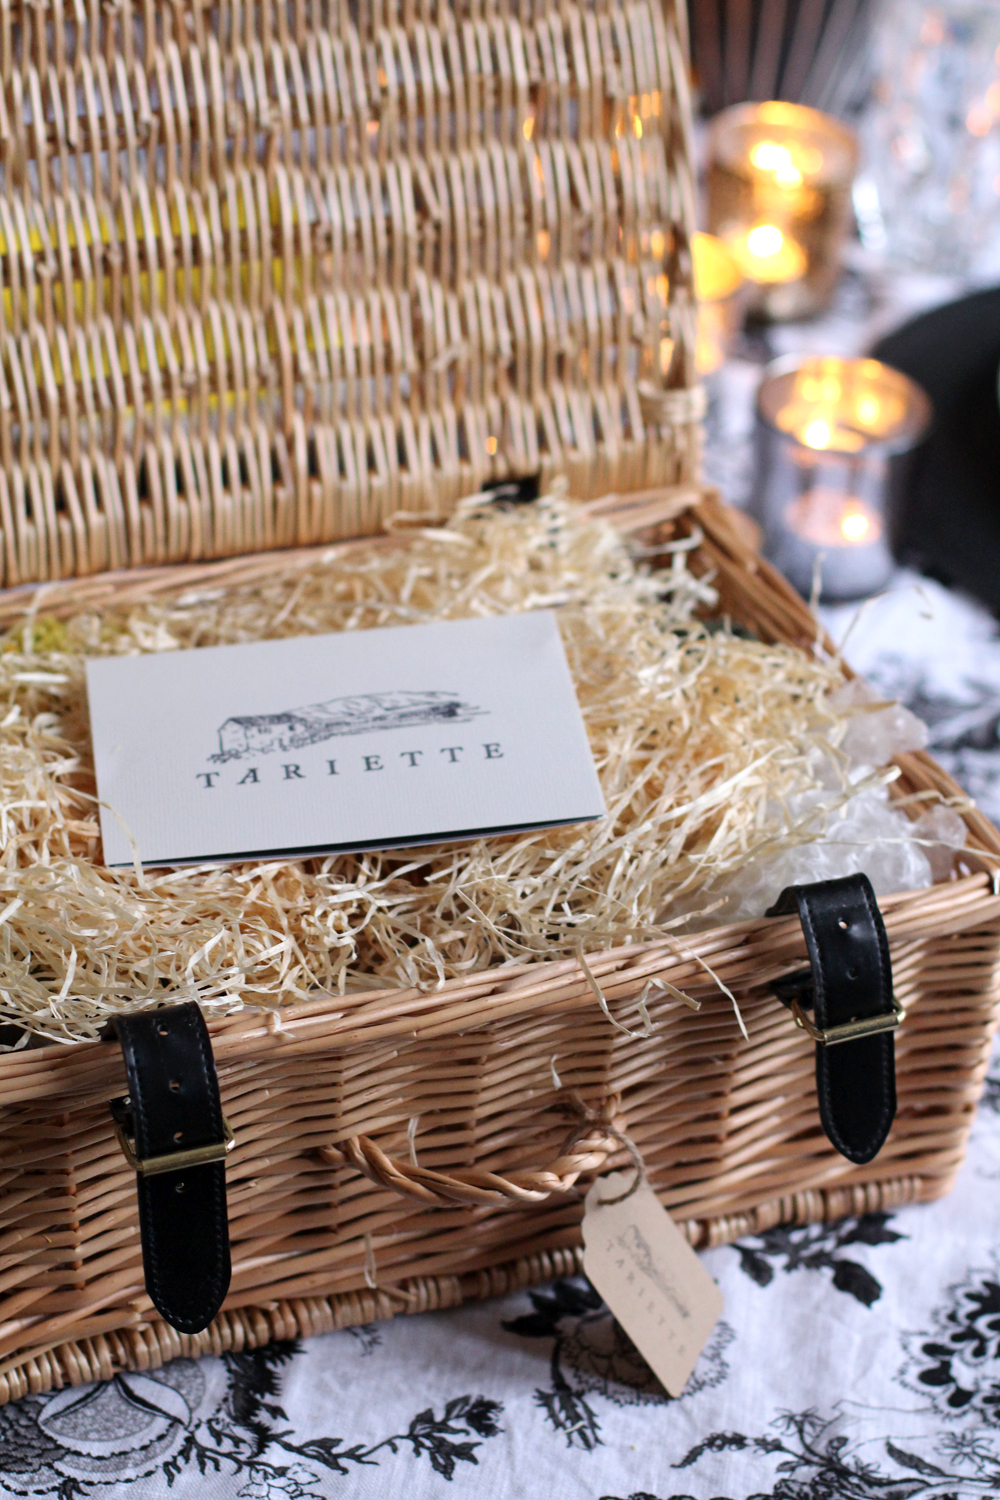 French Gourmet Food Hampers - London lifestyle blog